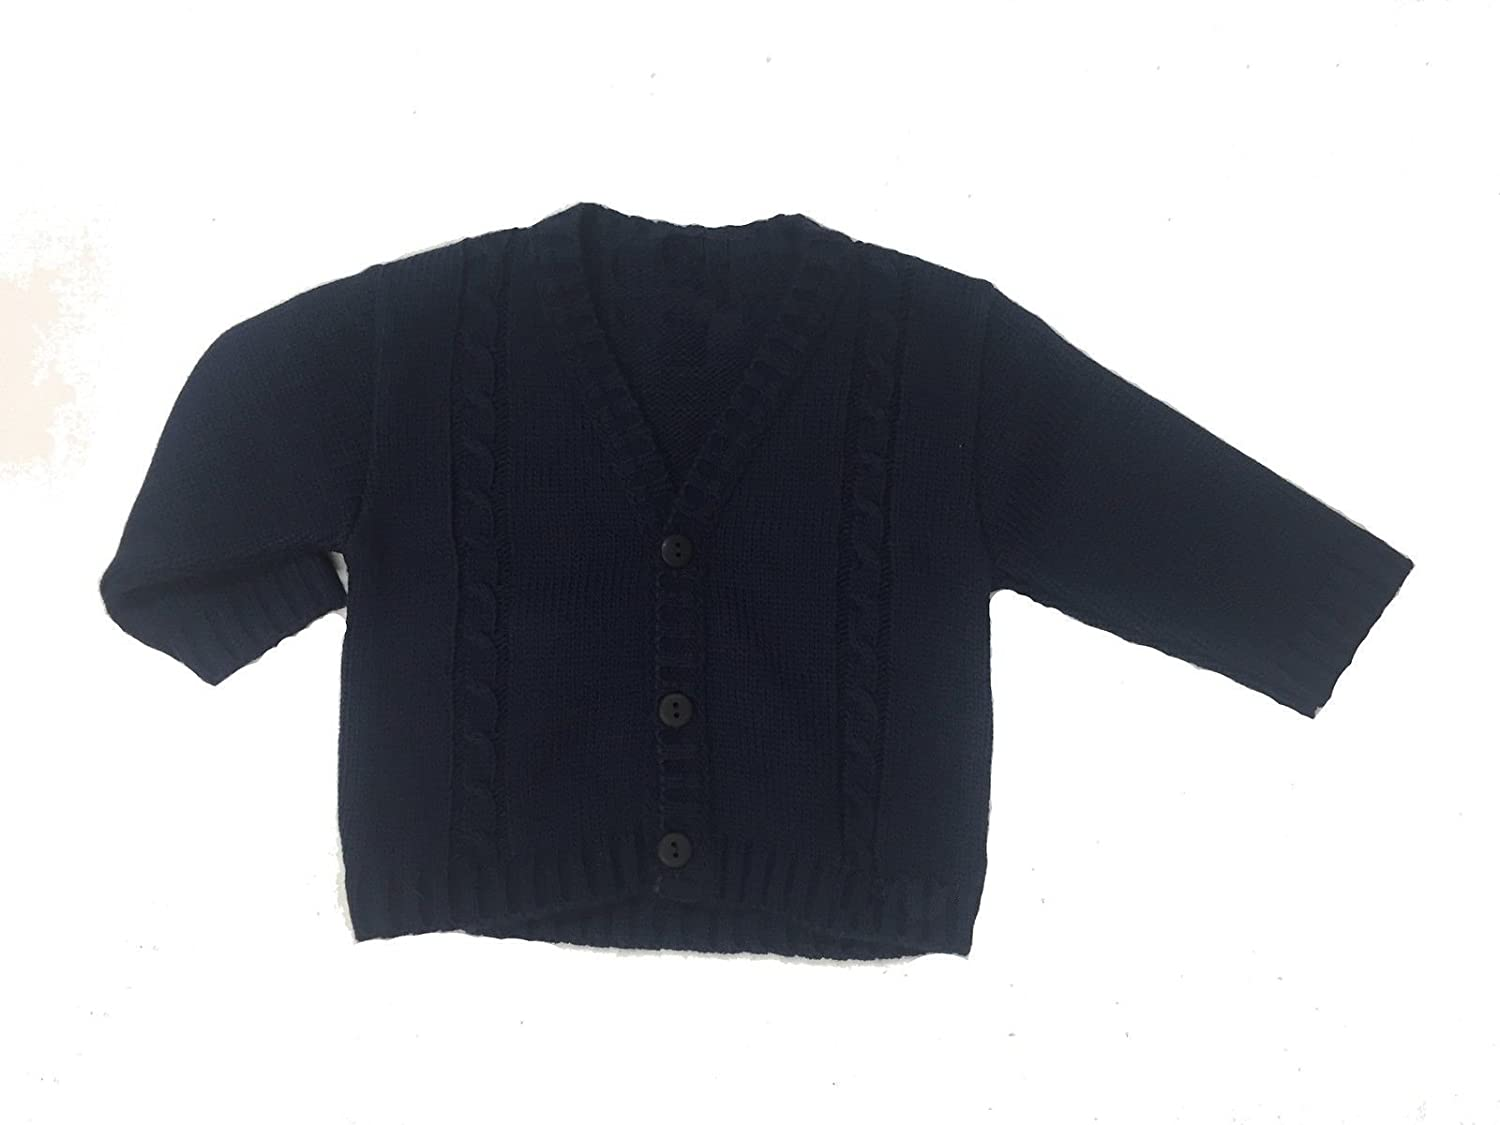 3f762c0b8 Dandelion Clothing Navy Blue Baby Boy Cable Knitted Sweater Cardigan  Outdoor Jumper: Amazon.co.uk: Clothing